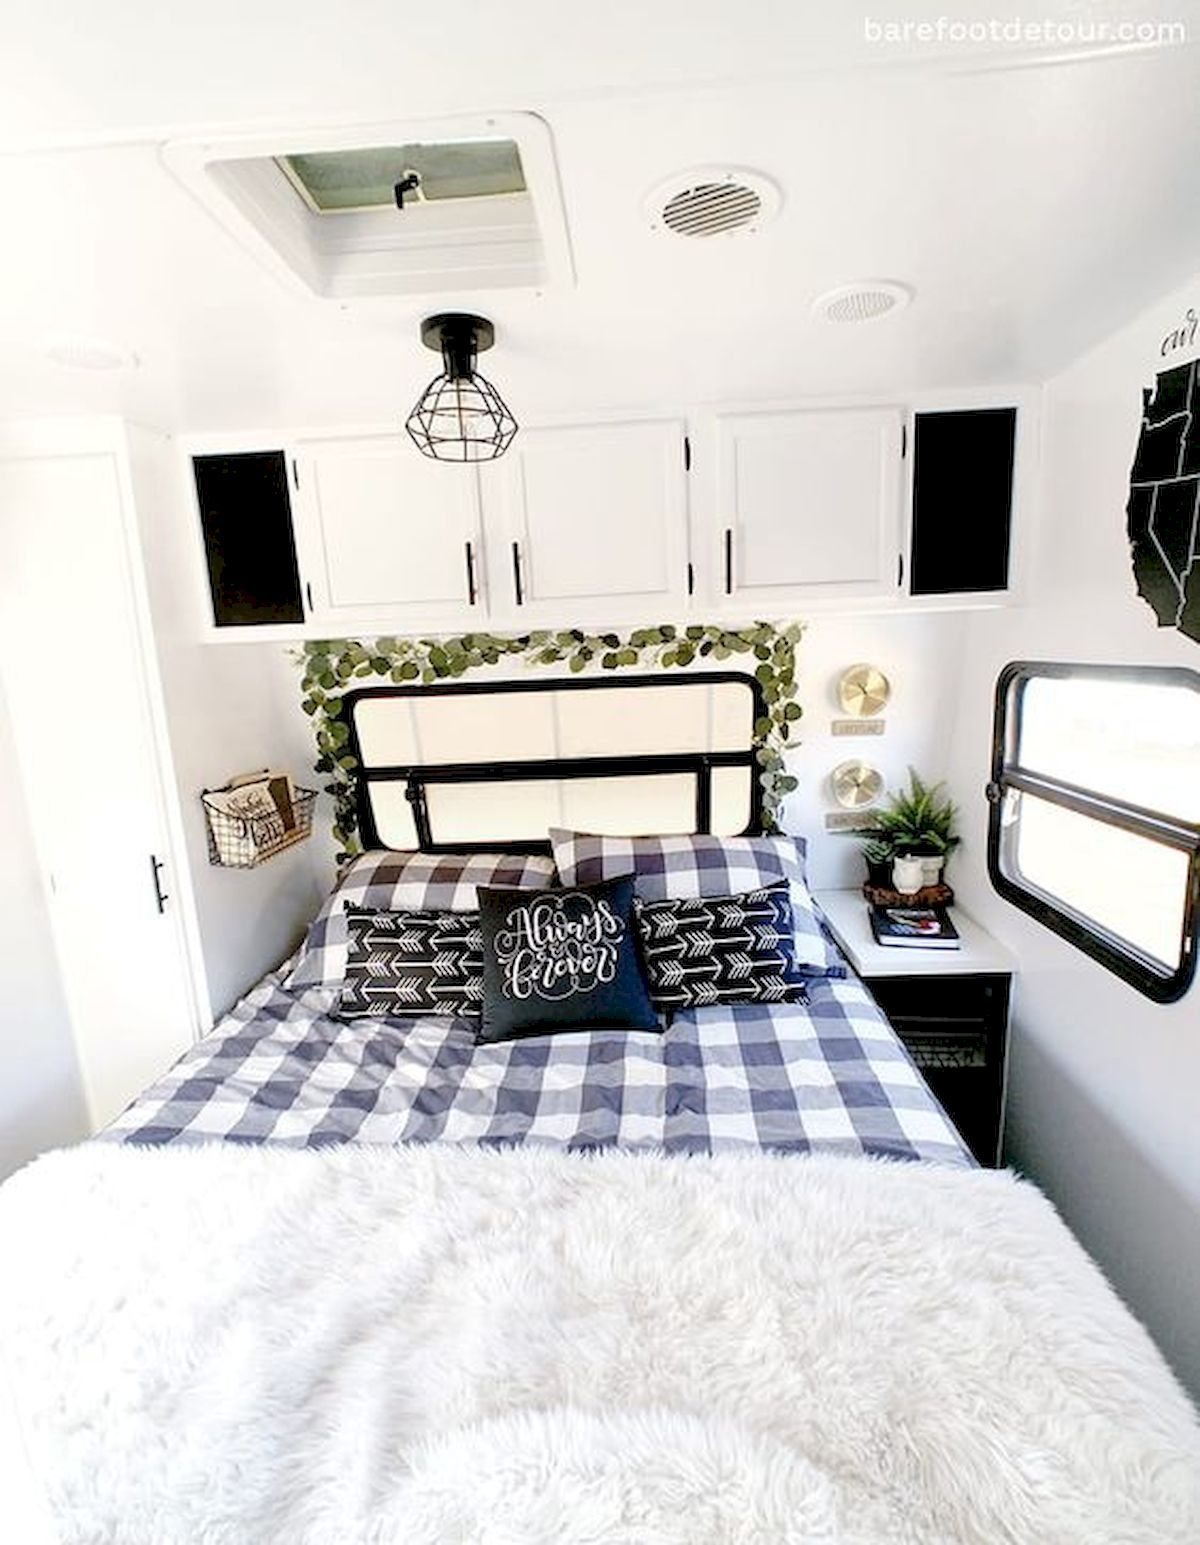 33 of the Best RV Bedroom Ideas33DECOR in 2020 Remodel